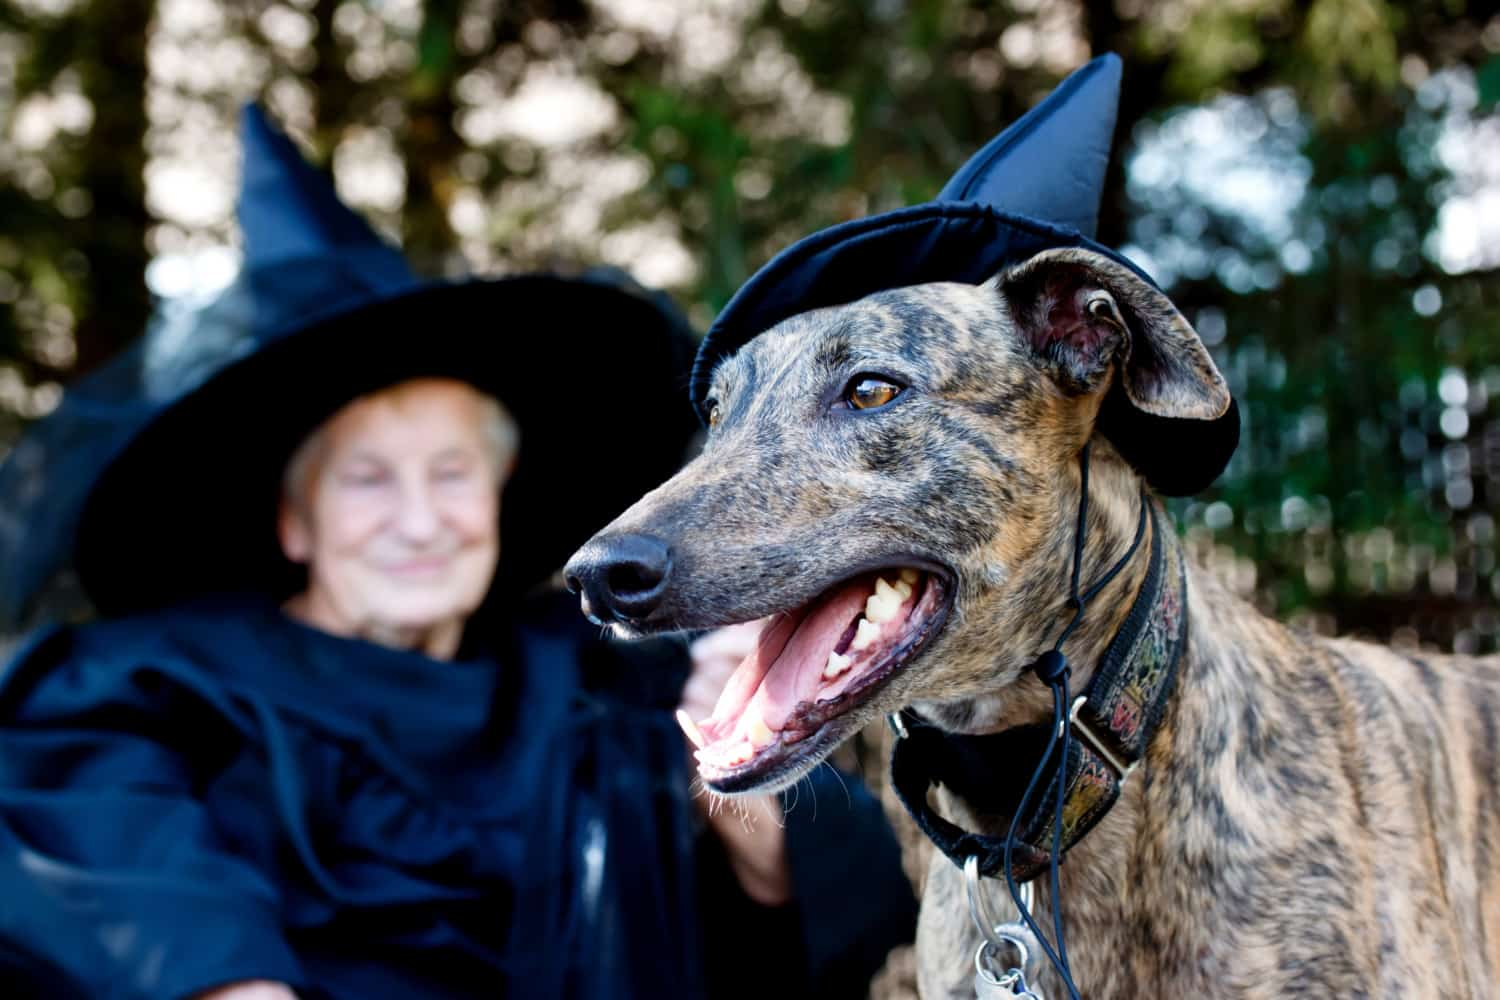 Pet Friendly Ghost Tours for Howl-o-ween | GoPetFriendly.com